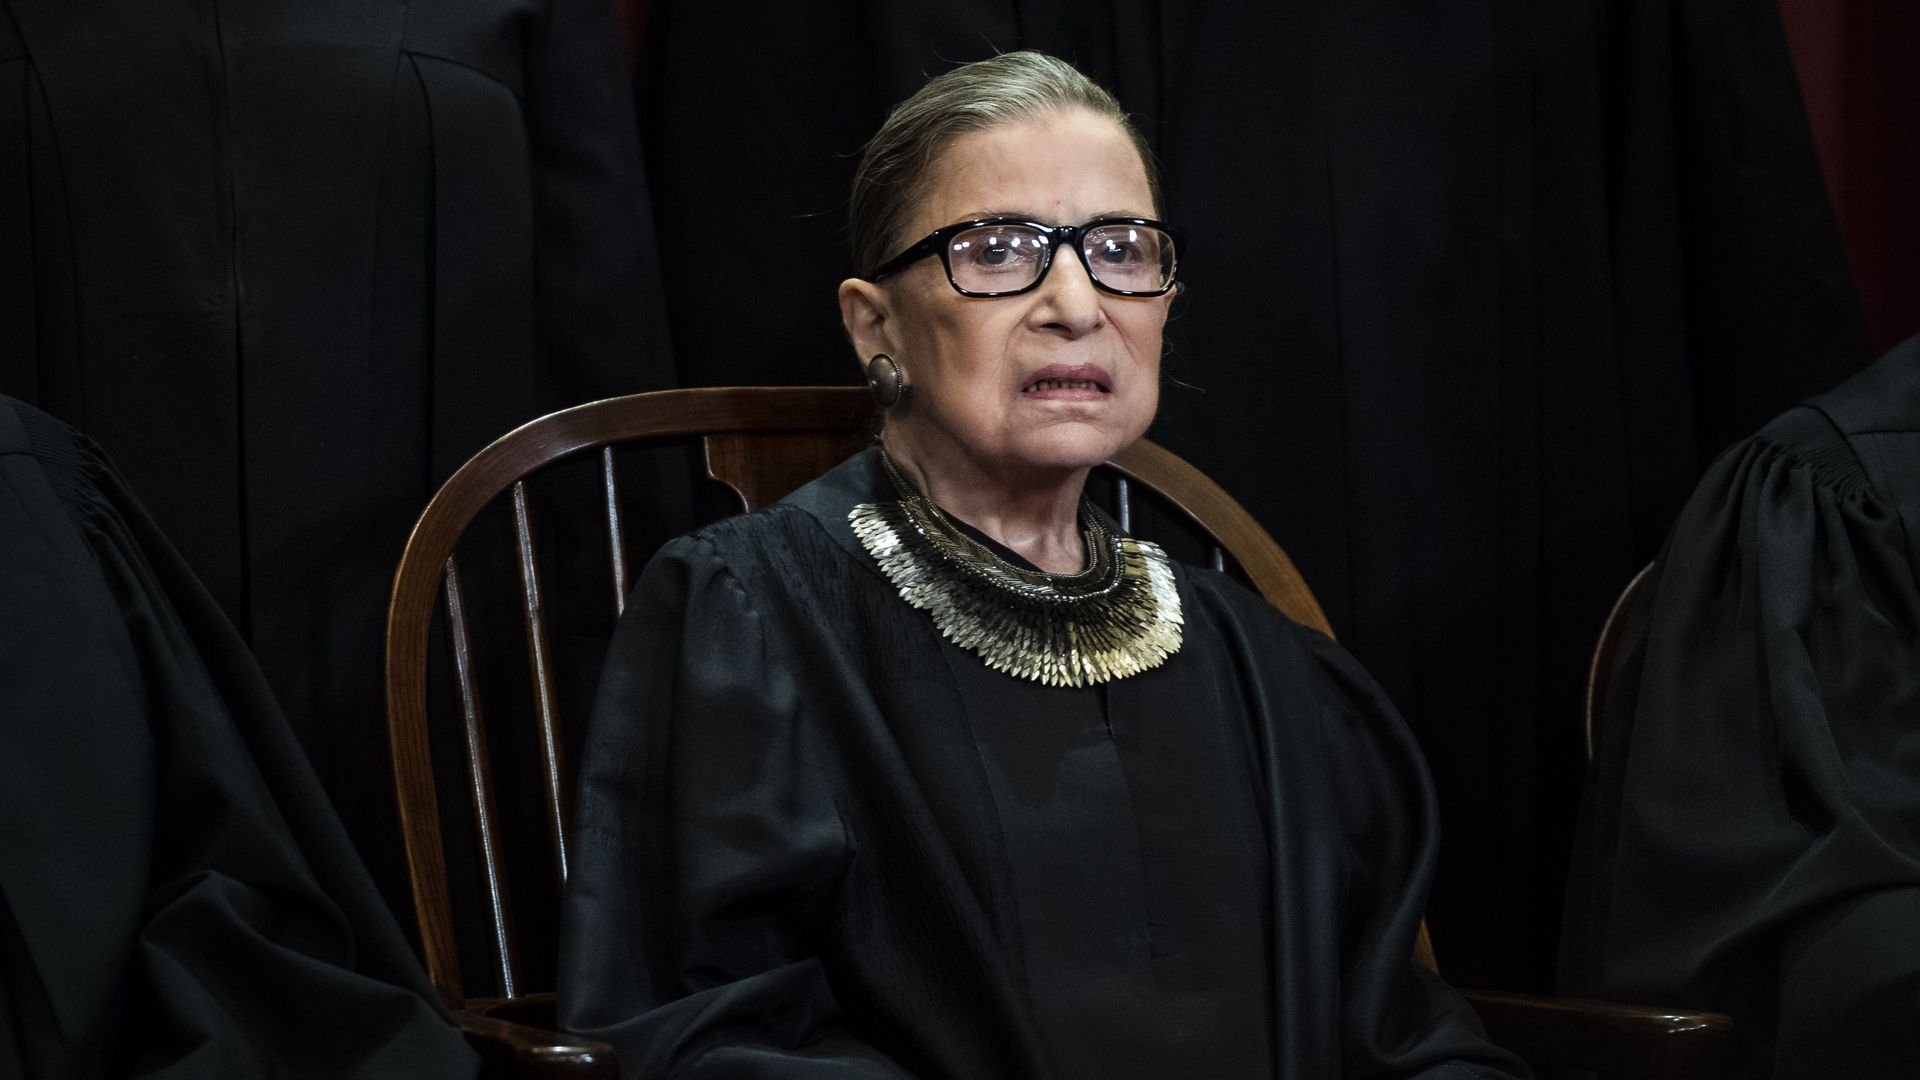 In this image, Justice Ruth Bader Ginsburg sits in a chair.